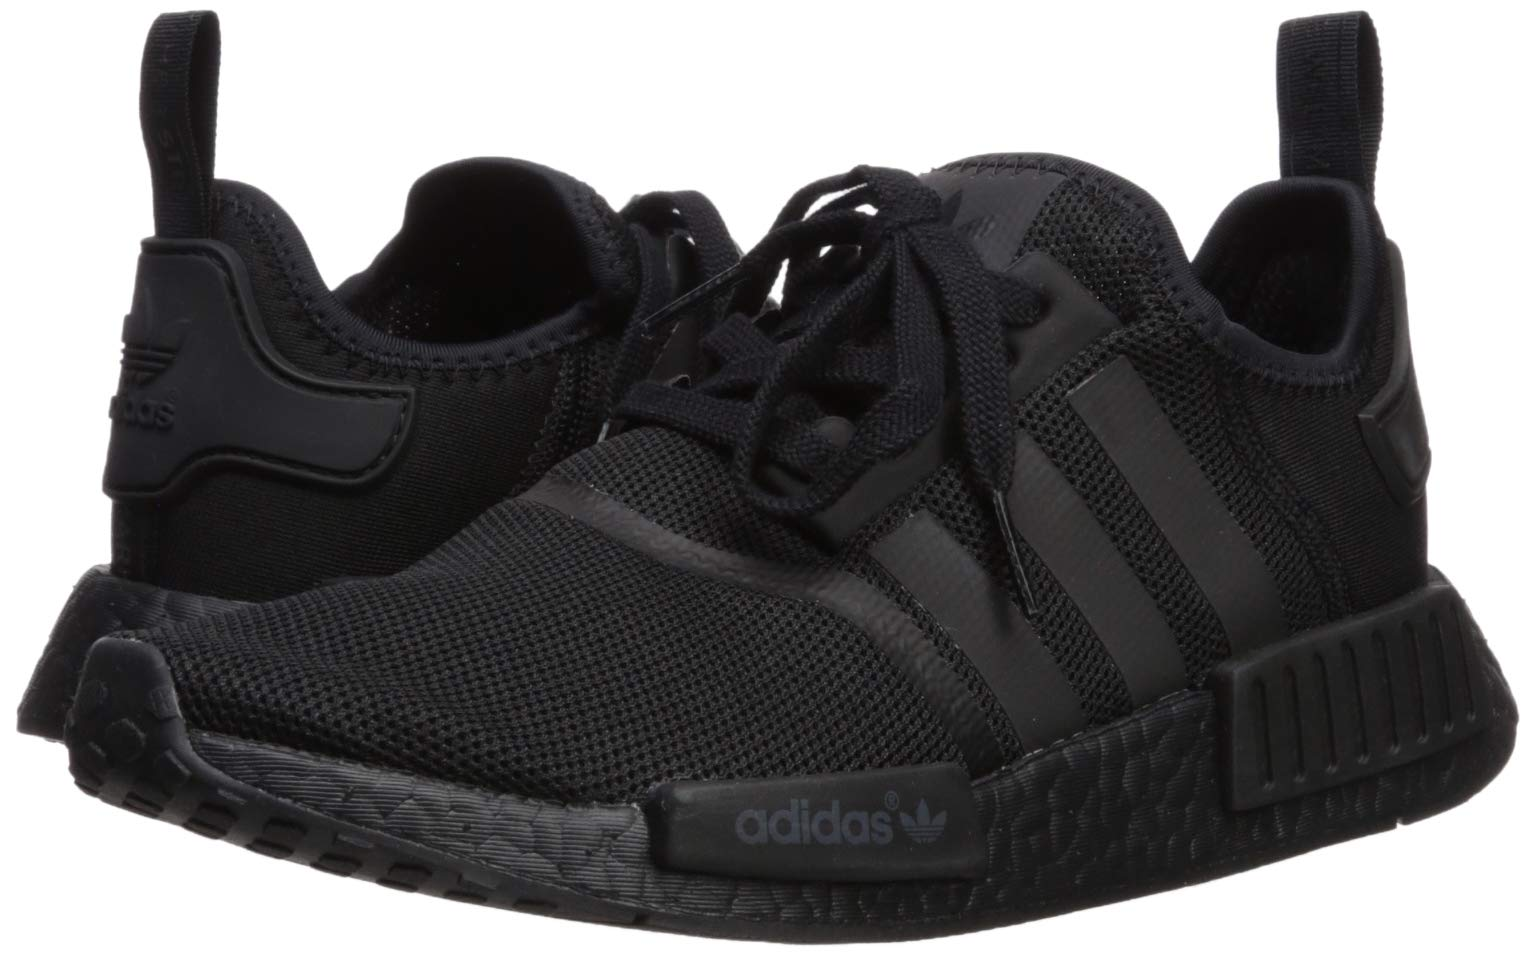 61ZwT%2By6oOL - adidas Men's NMD_r1 Trainers Black Size: 4.5 UK